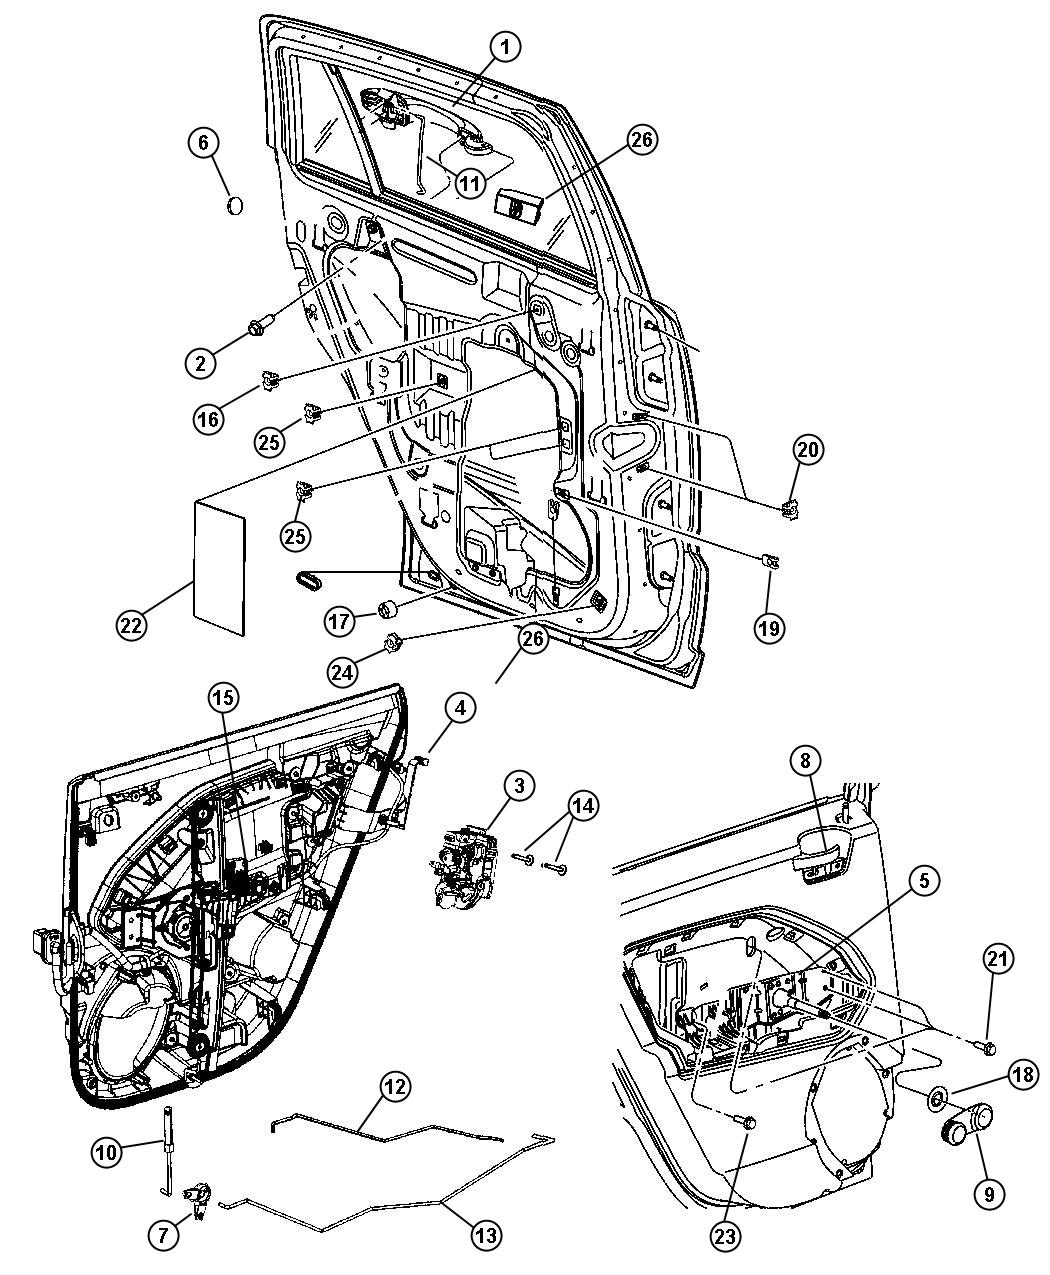 Service manual [2010 Jeep Patriot Driver Door Latch Repair